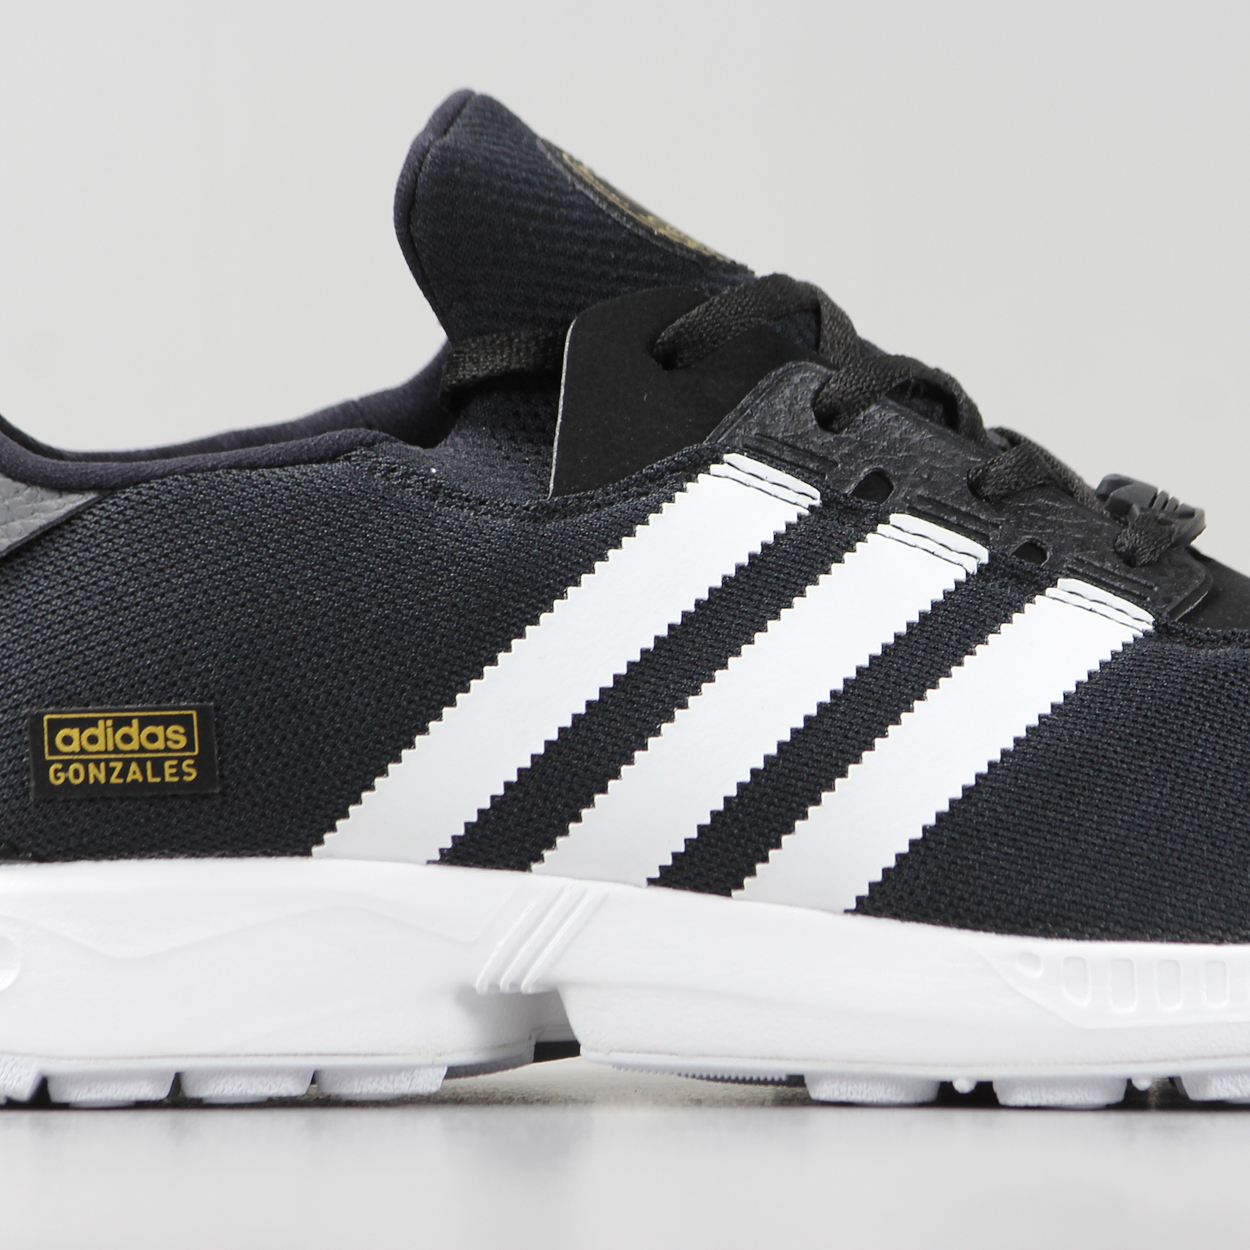 sneakers for cheap 514f0 b9611 Adidas Skateboarding Mens ZX Gonz Pro Shoes Black White ...